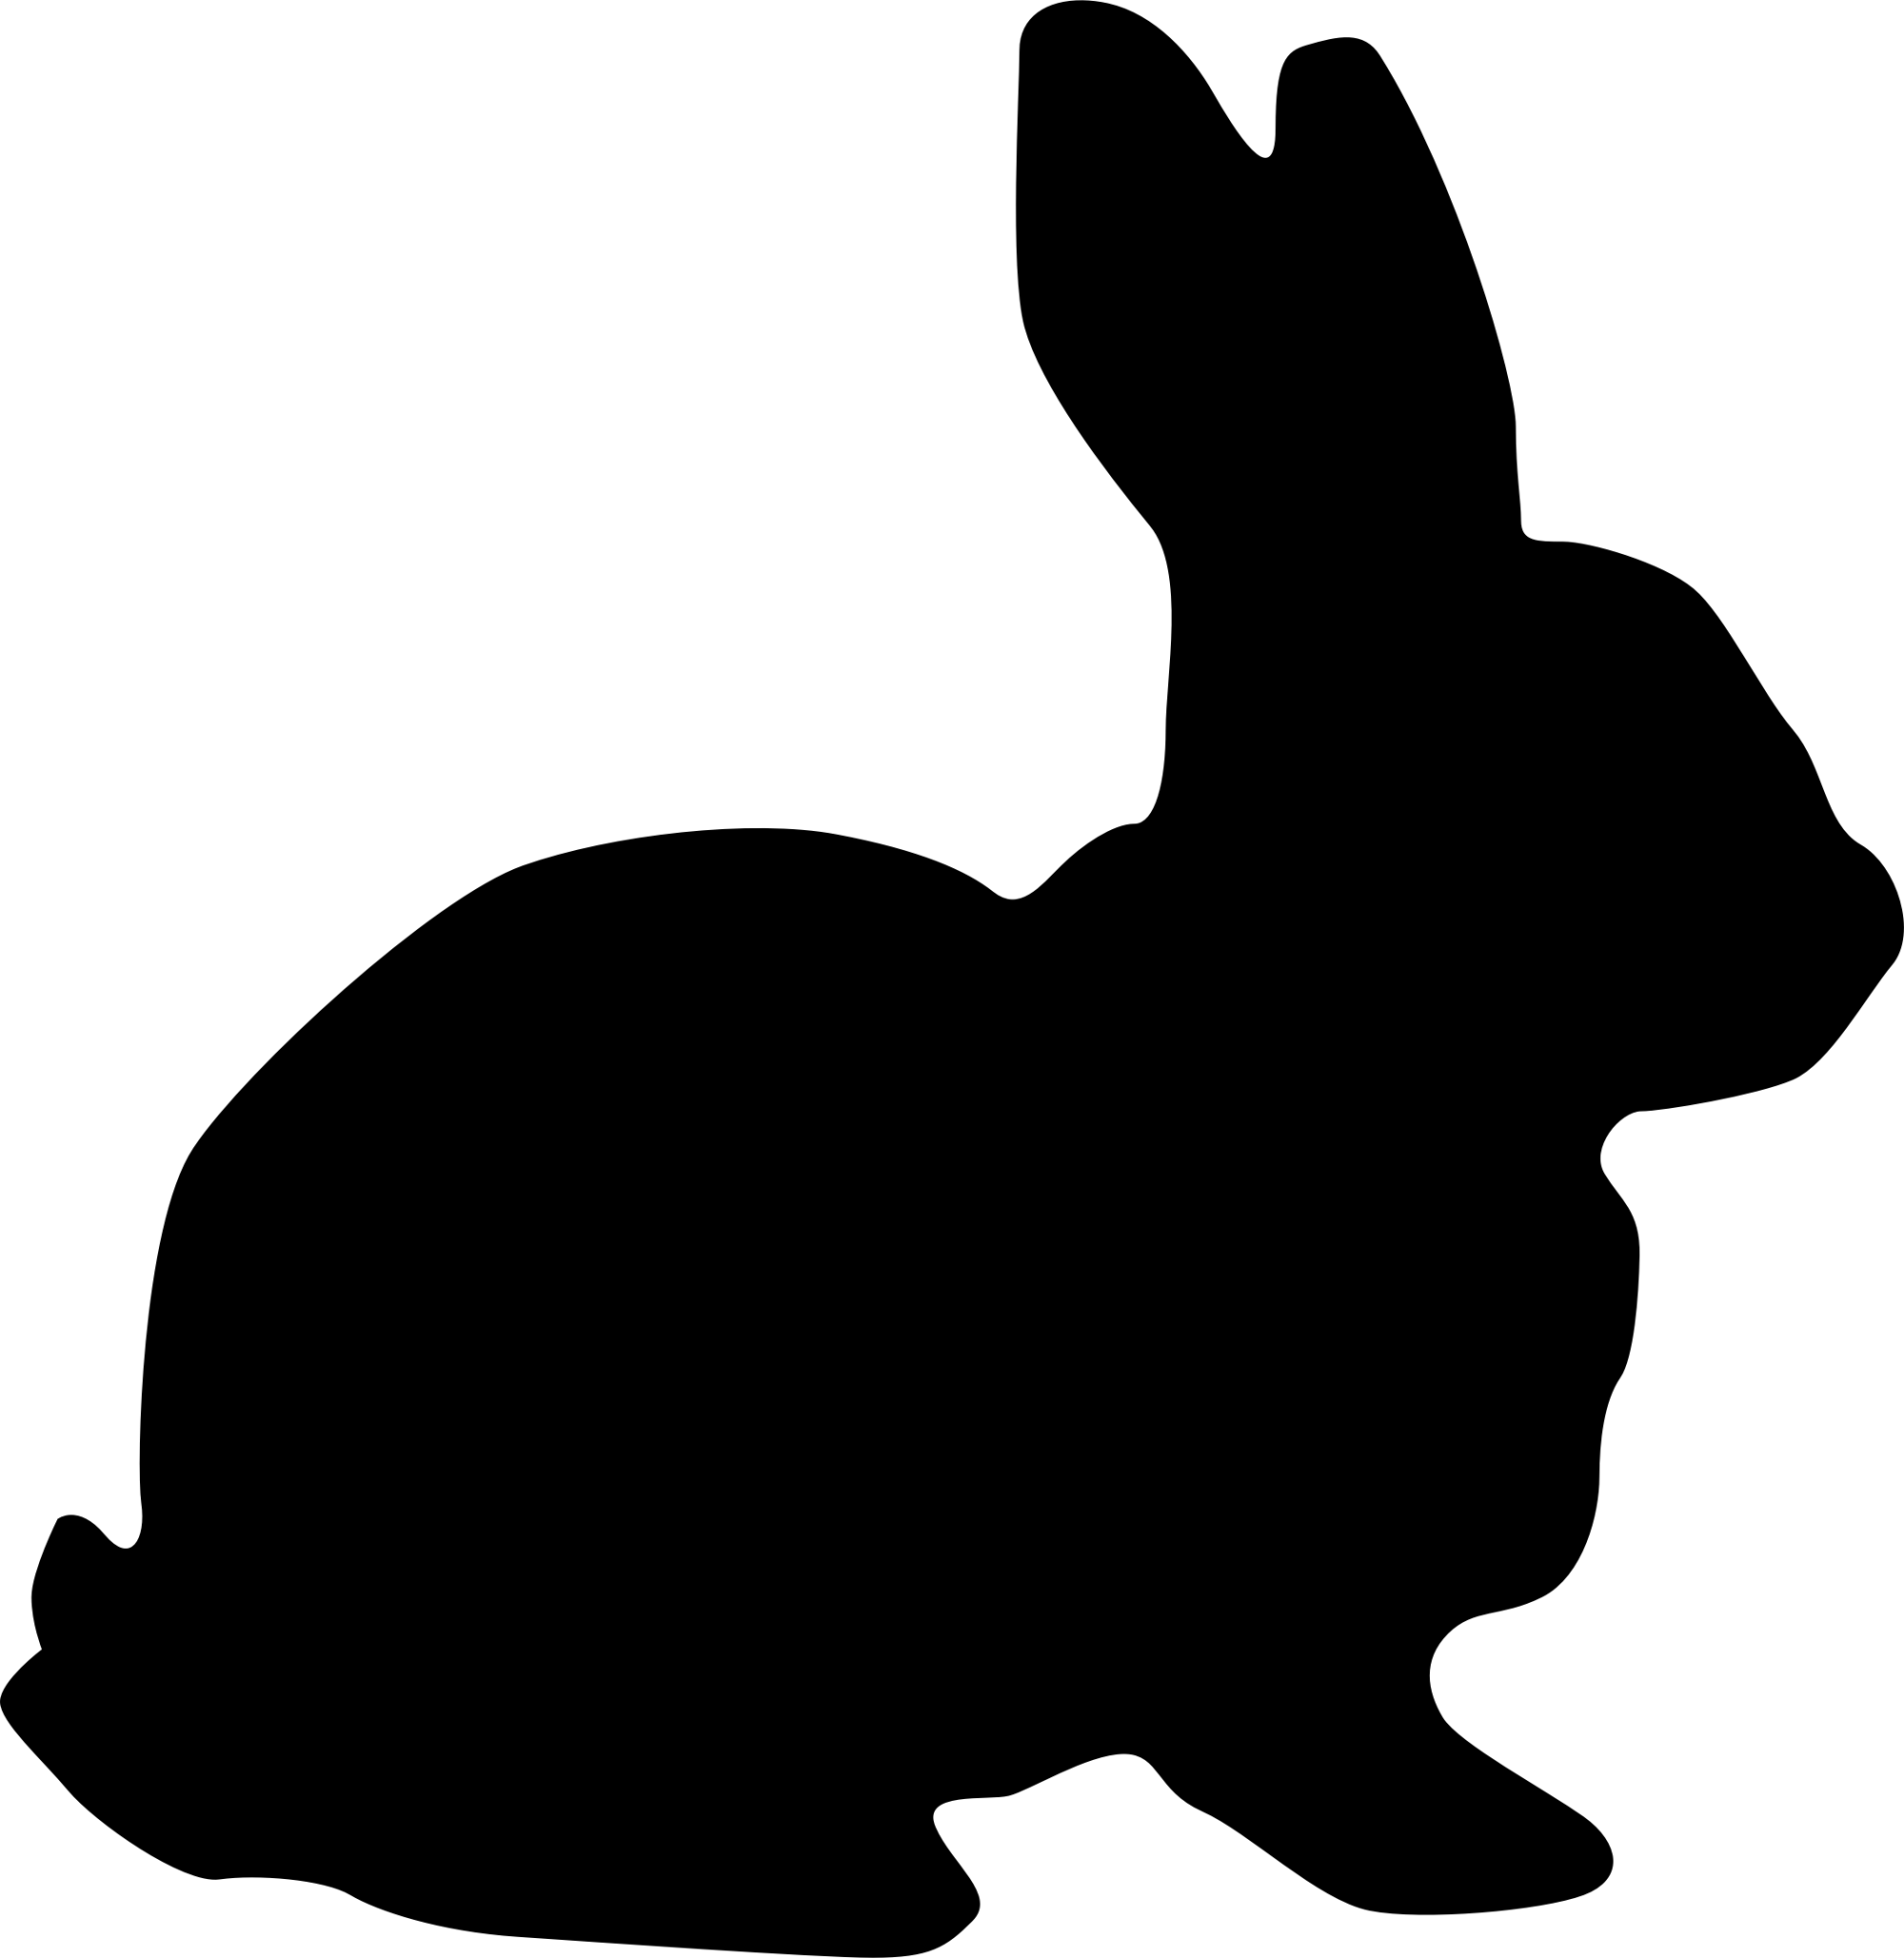 hight resolution of bunny silhouette png clipart rabbit big image image free stock